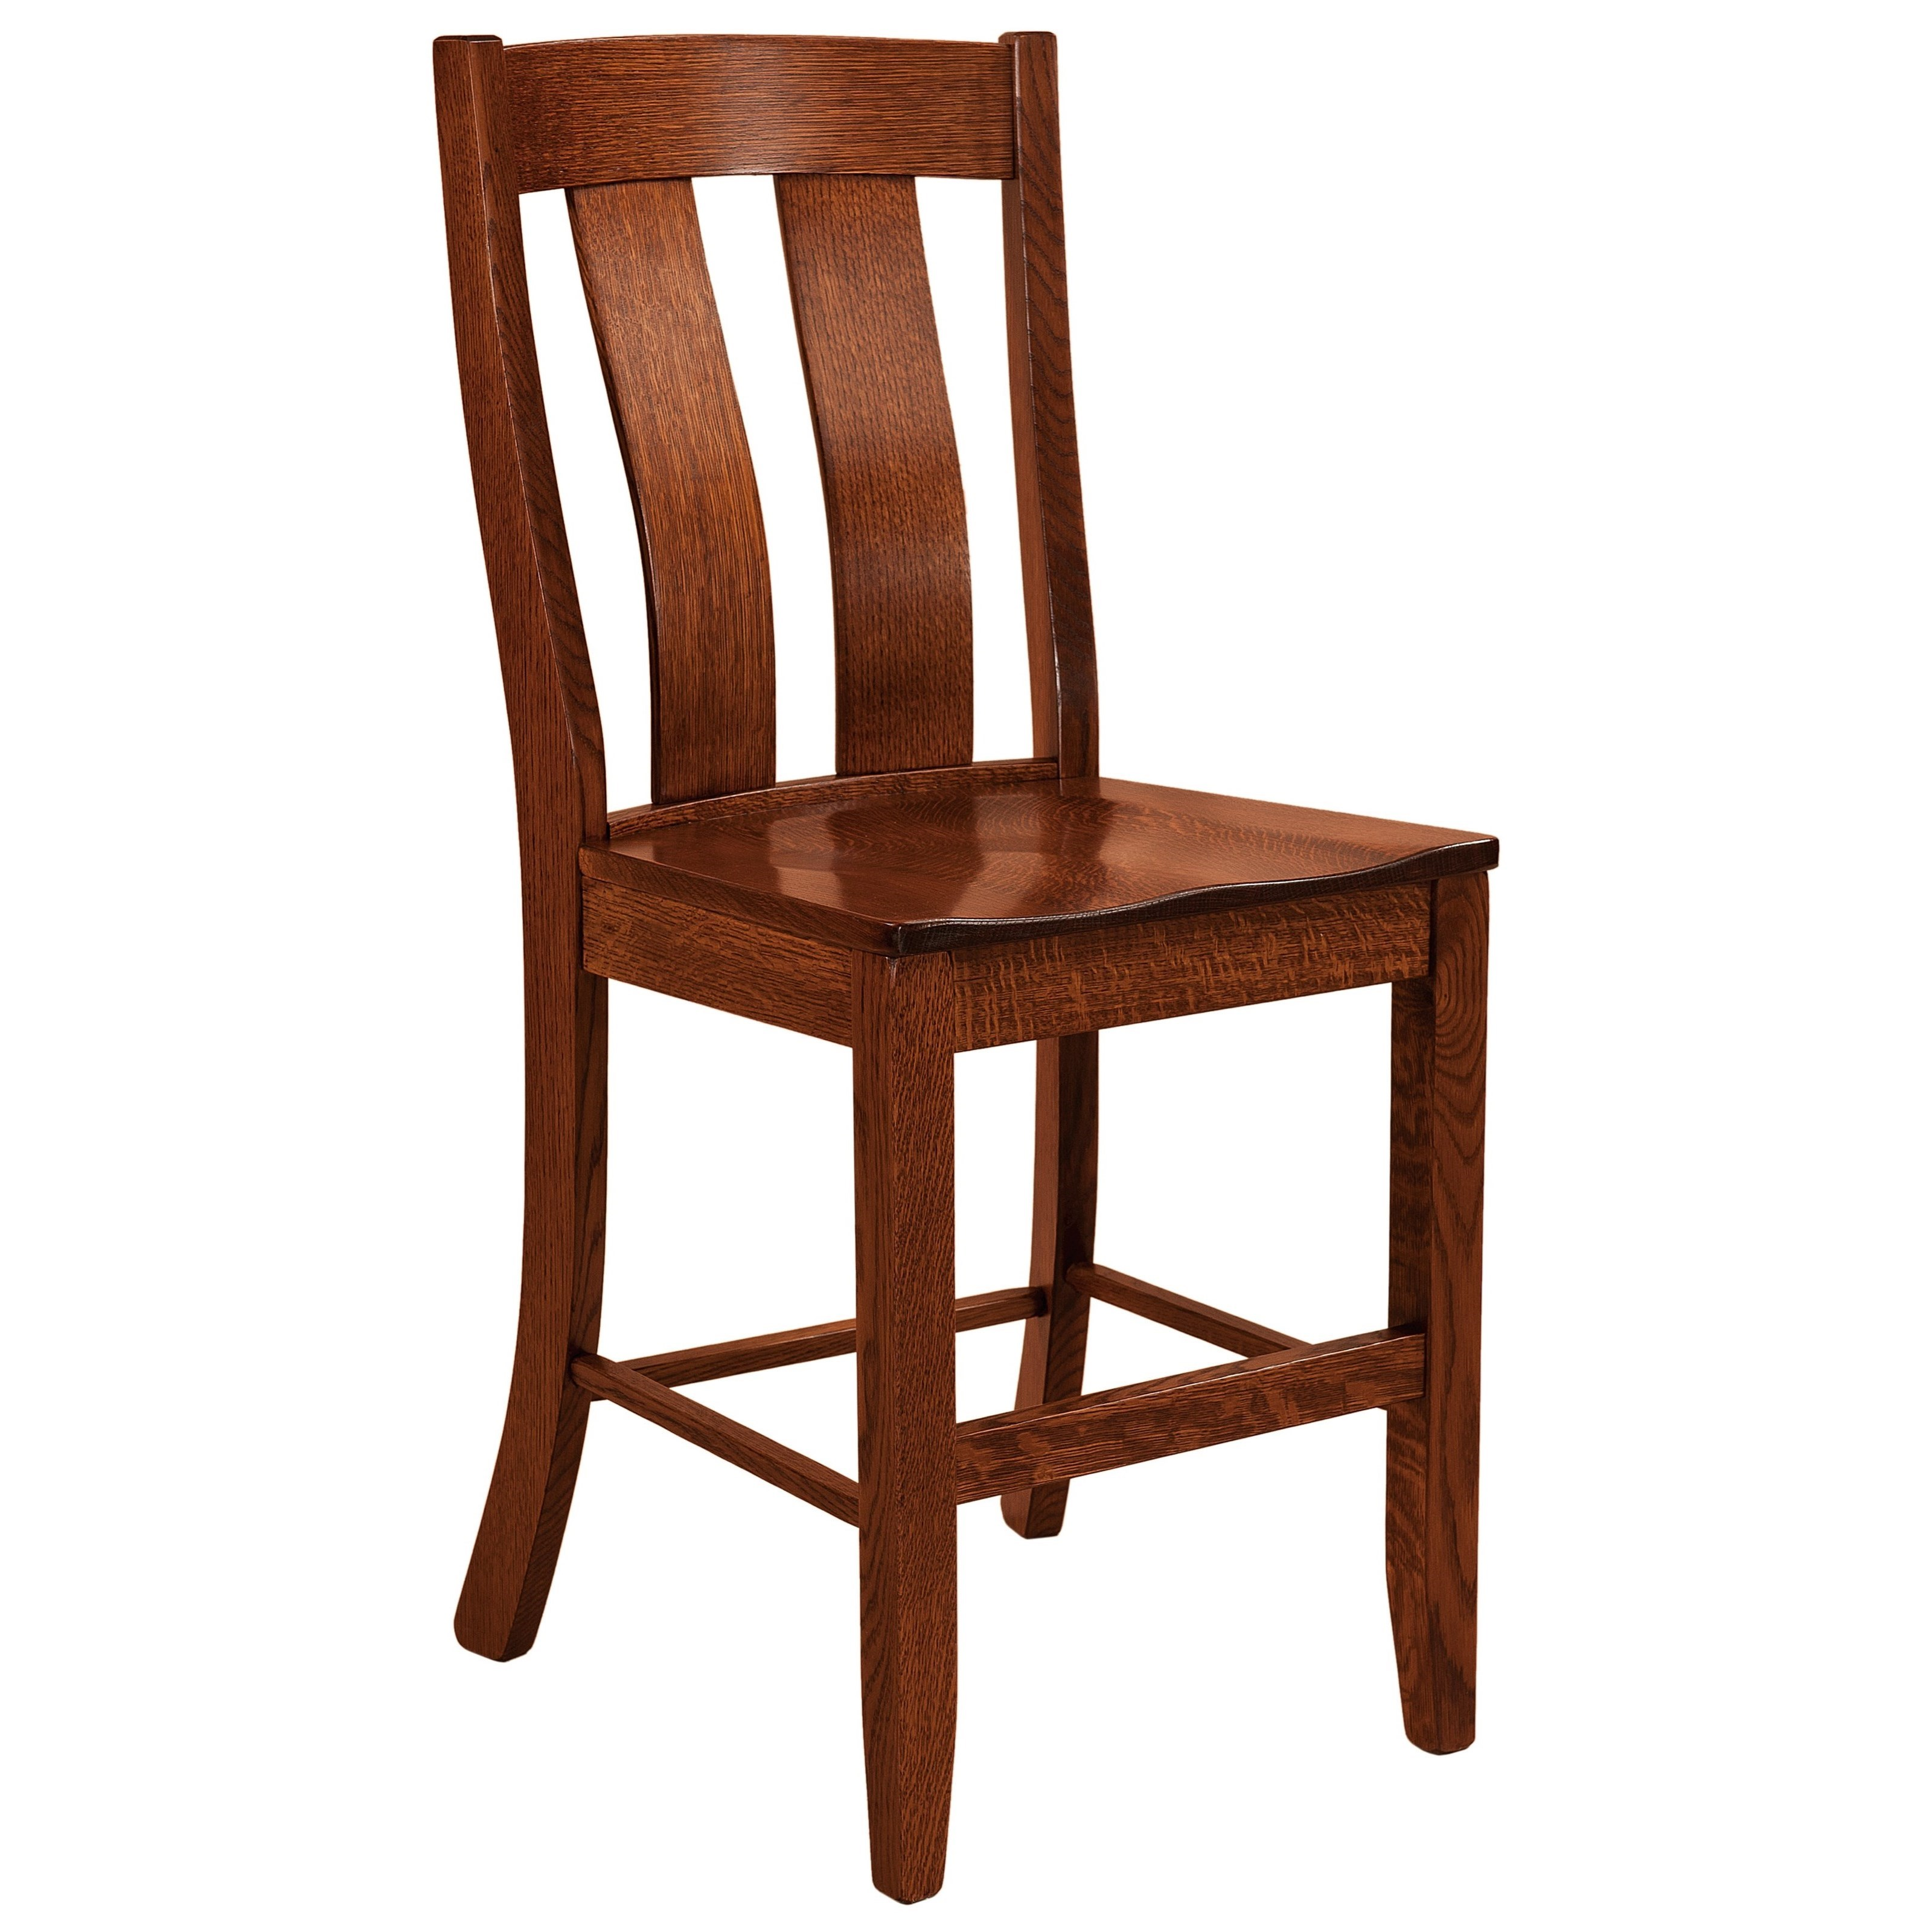 Laurie Stationary Bar Stool - Leather Seat by F&N Woodworking at Mueller Furniture